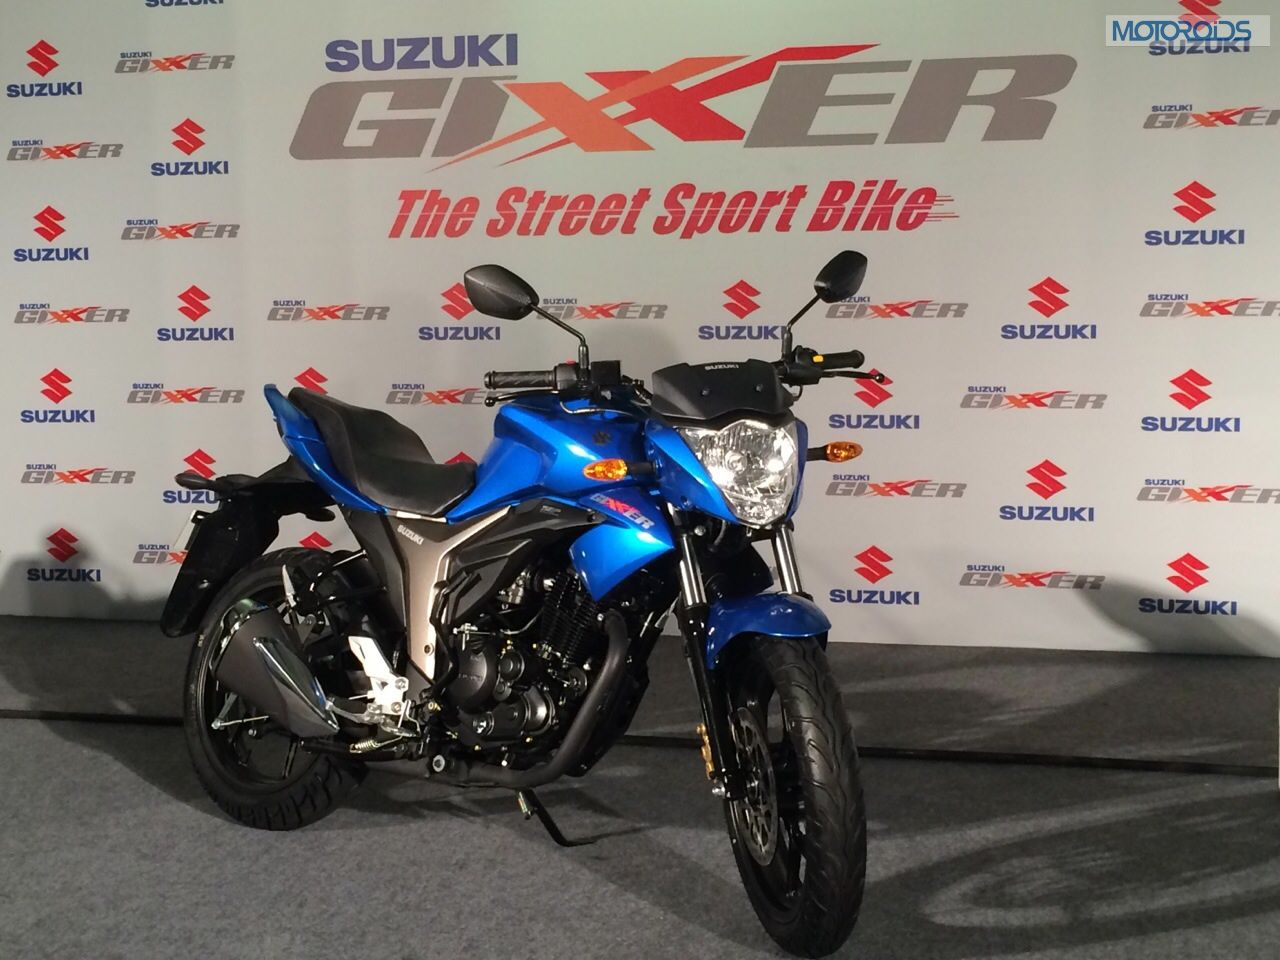 Suzuki Gixxer 155 First Look Review: Price and all that you wanted to know